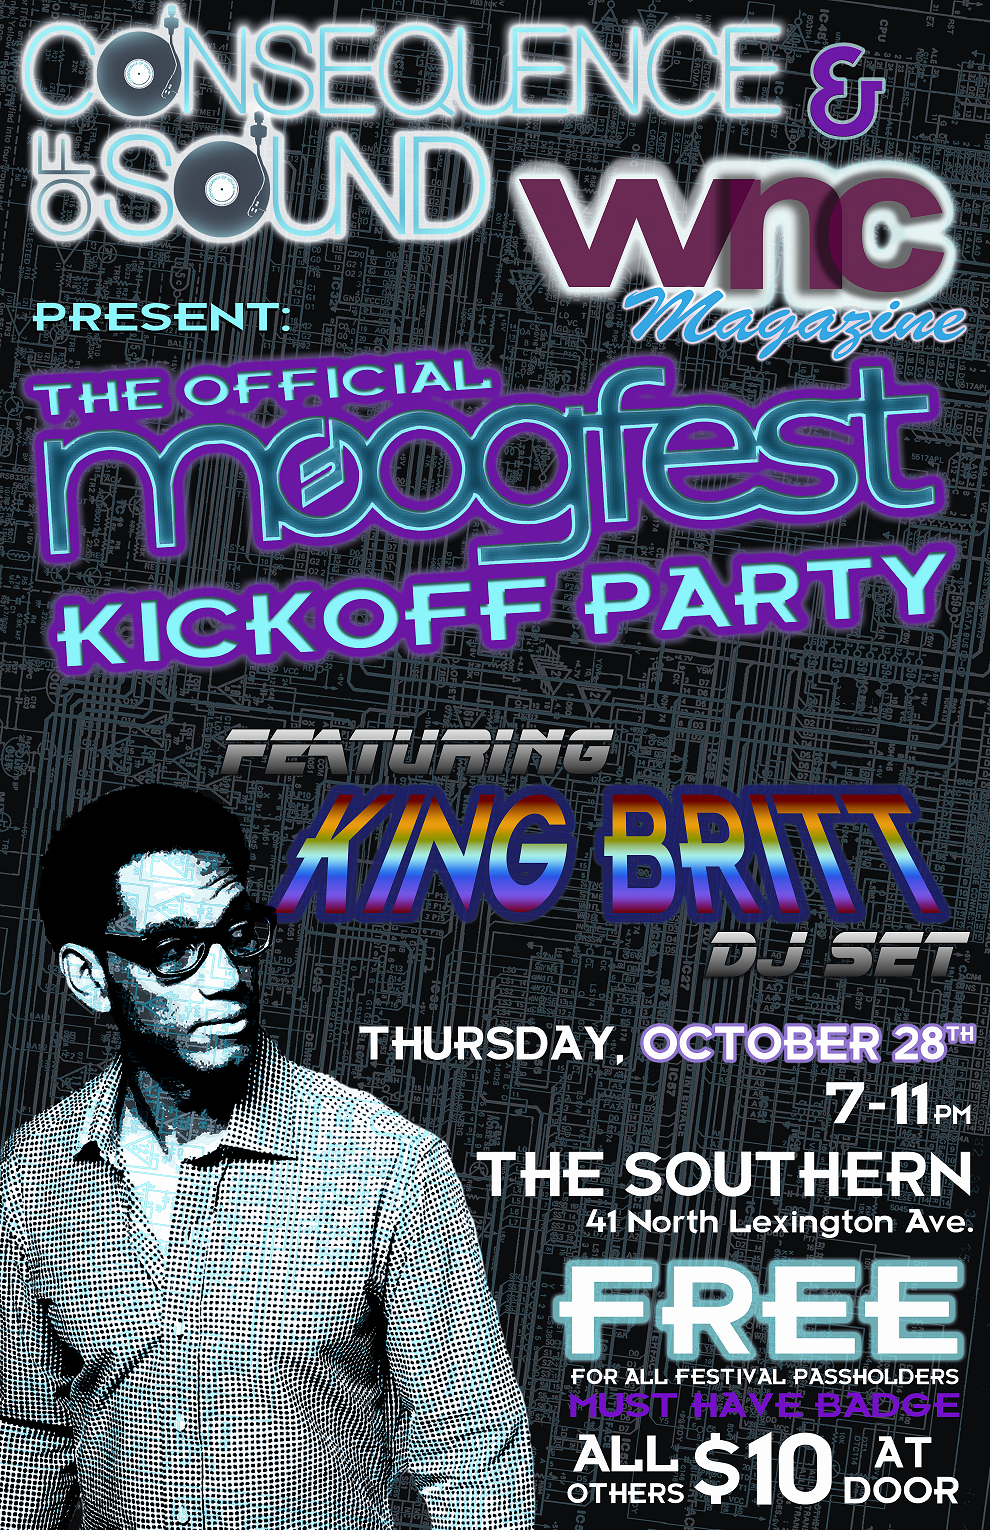 moog party poster color CoS/WNC Magazine Presents: The Official MoogFest Kickoff Party w/ King Britt